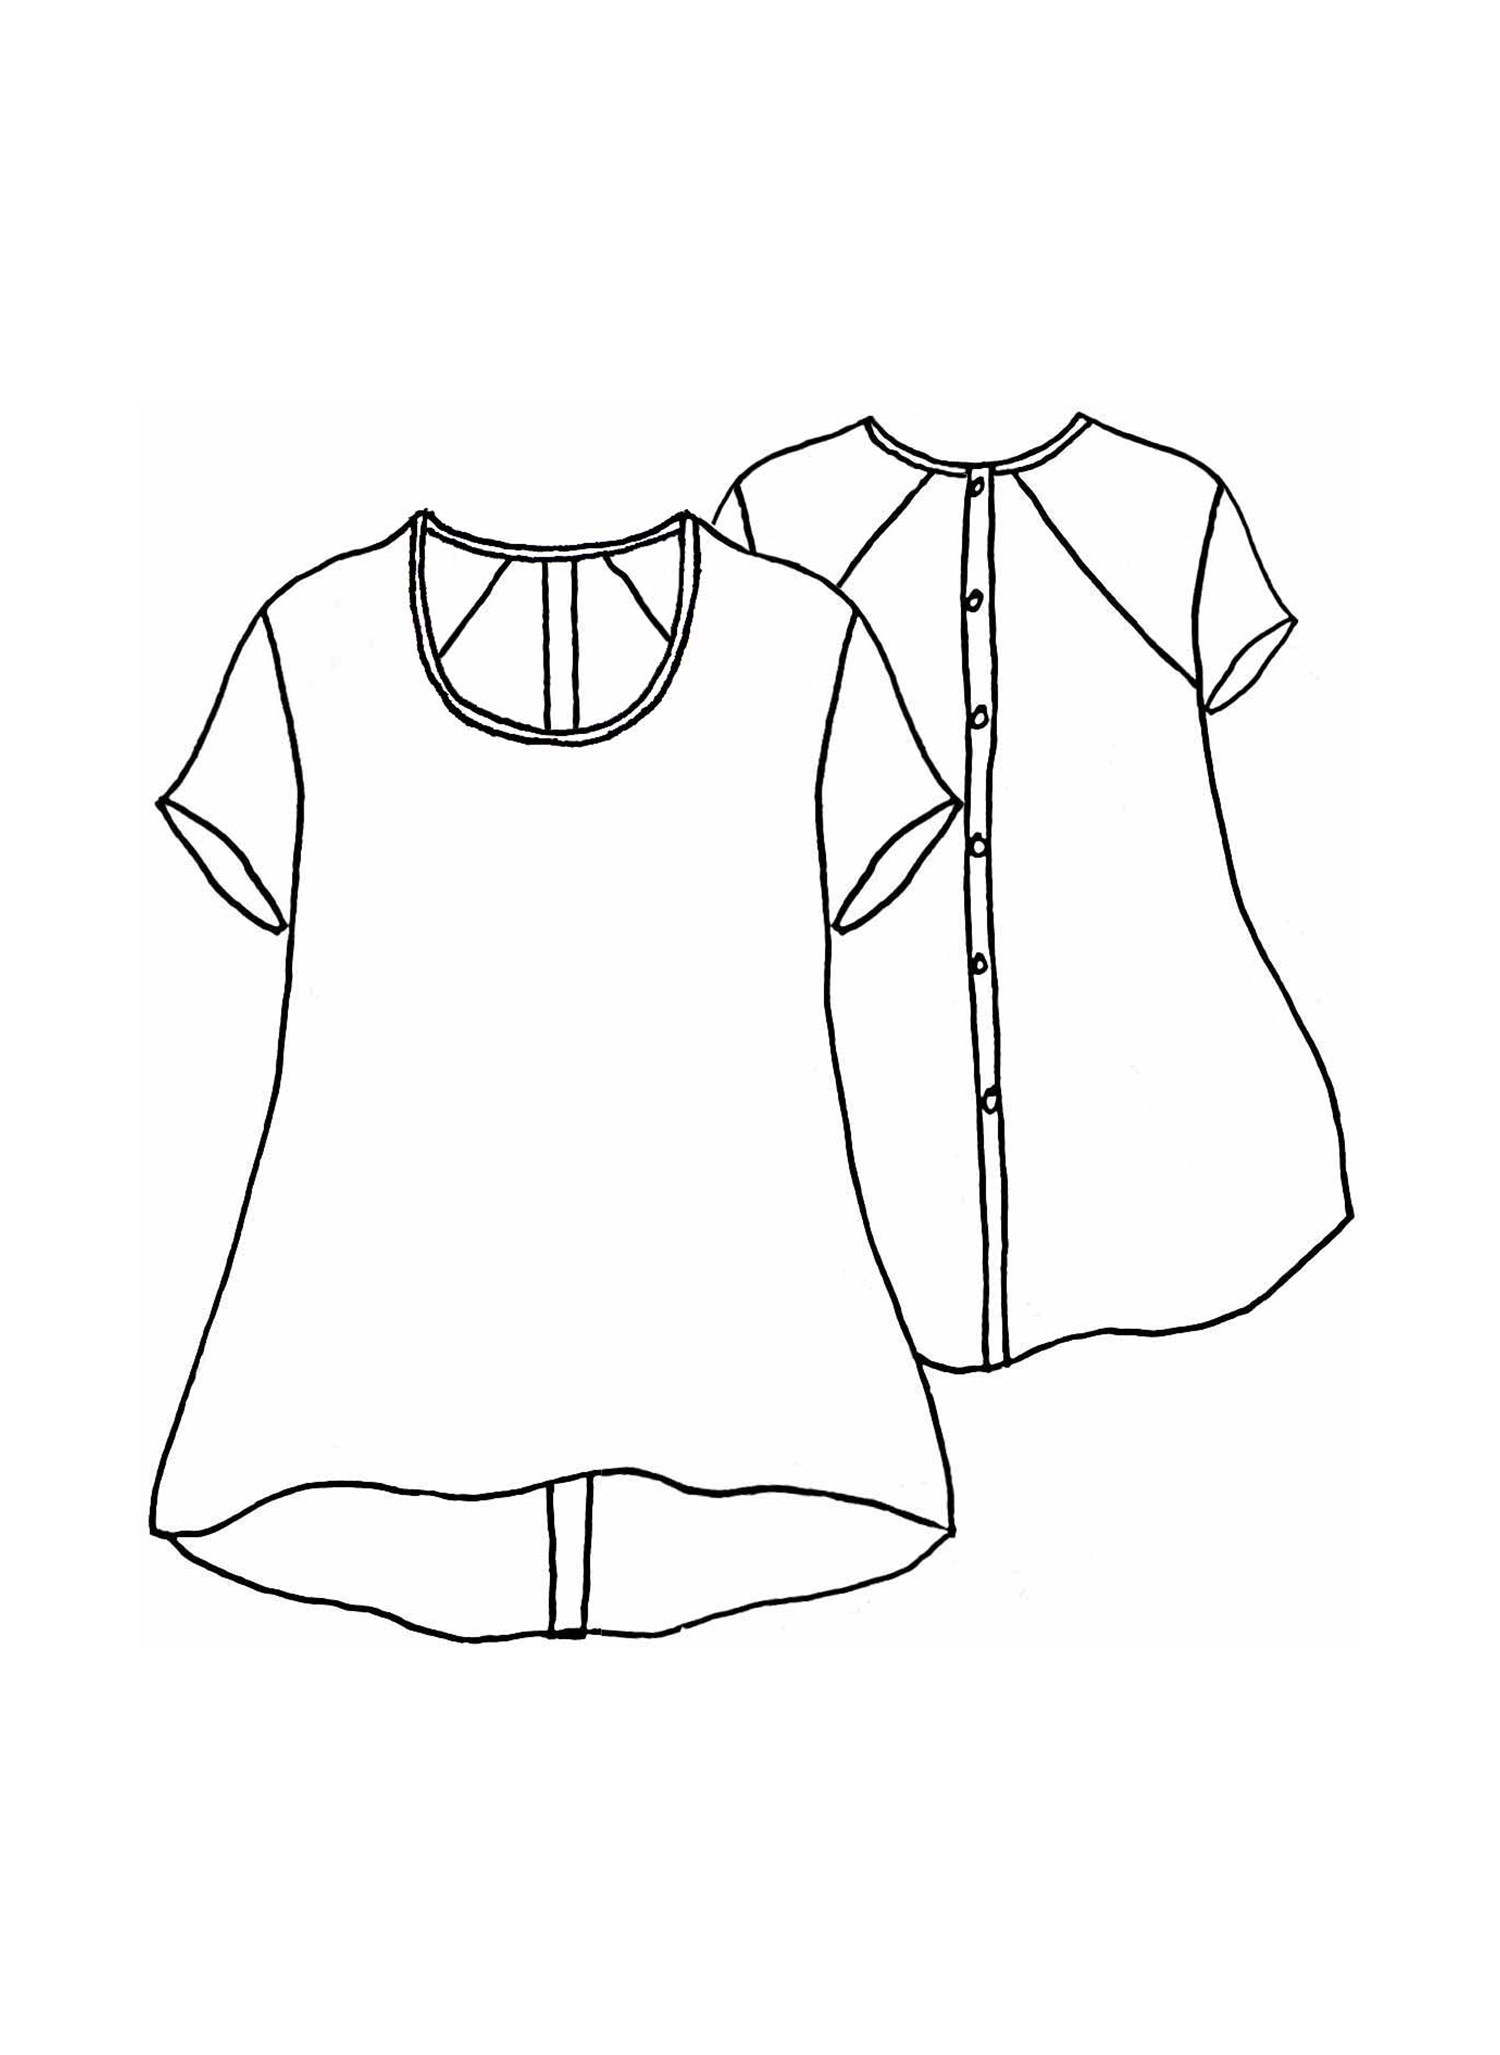 Blossom Blouse sketch image